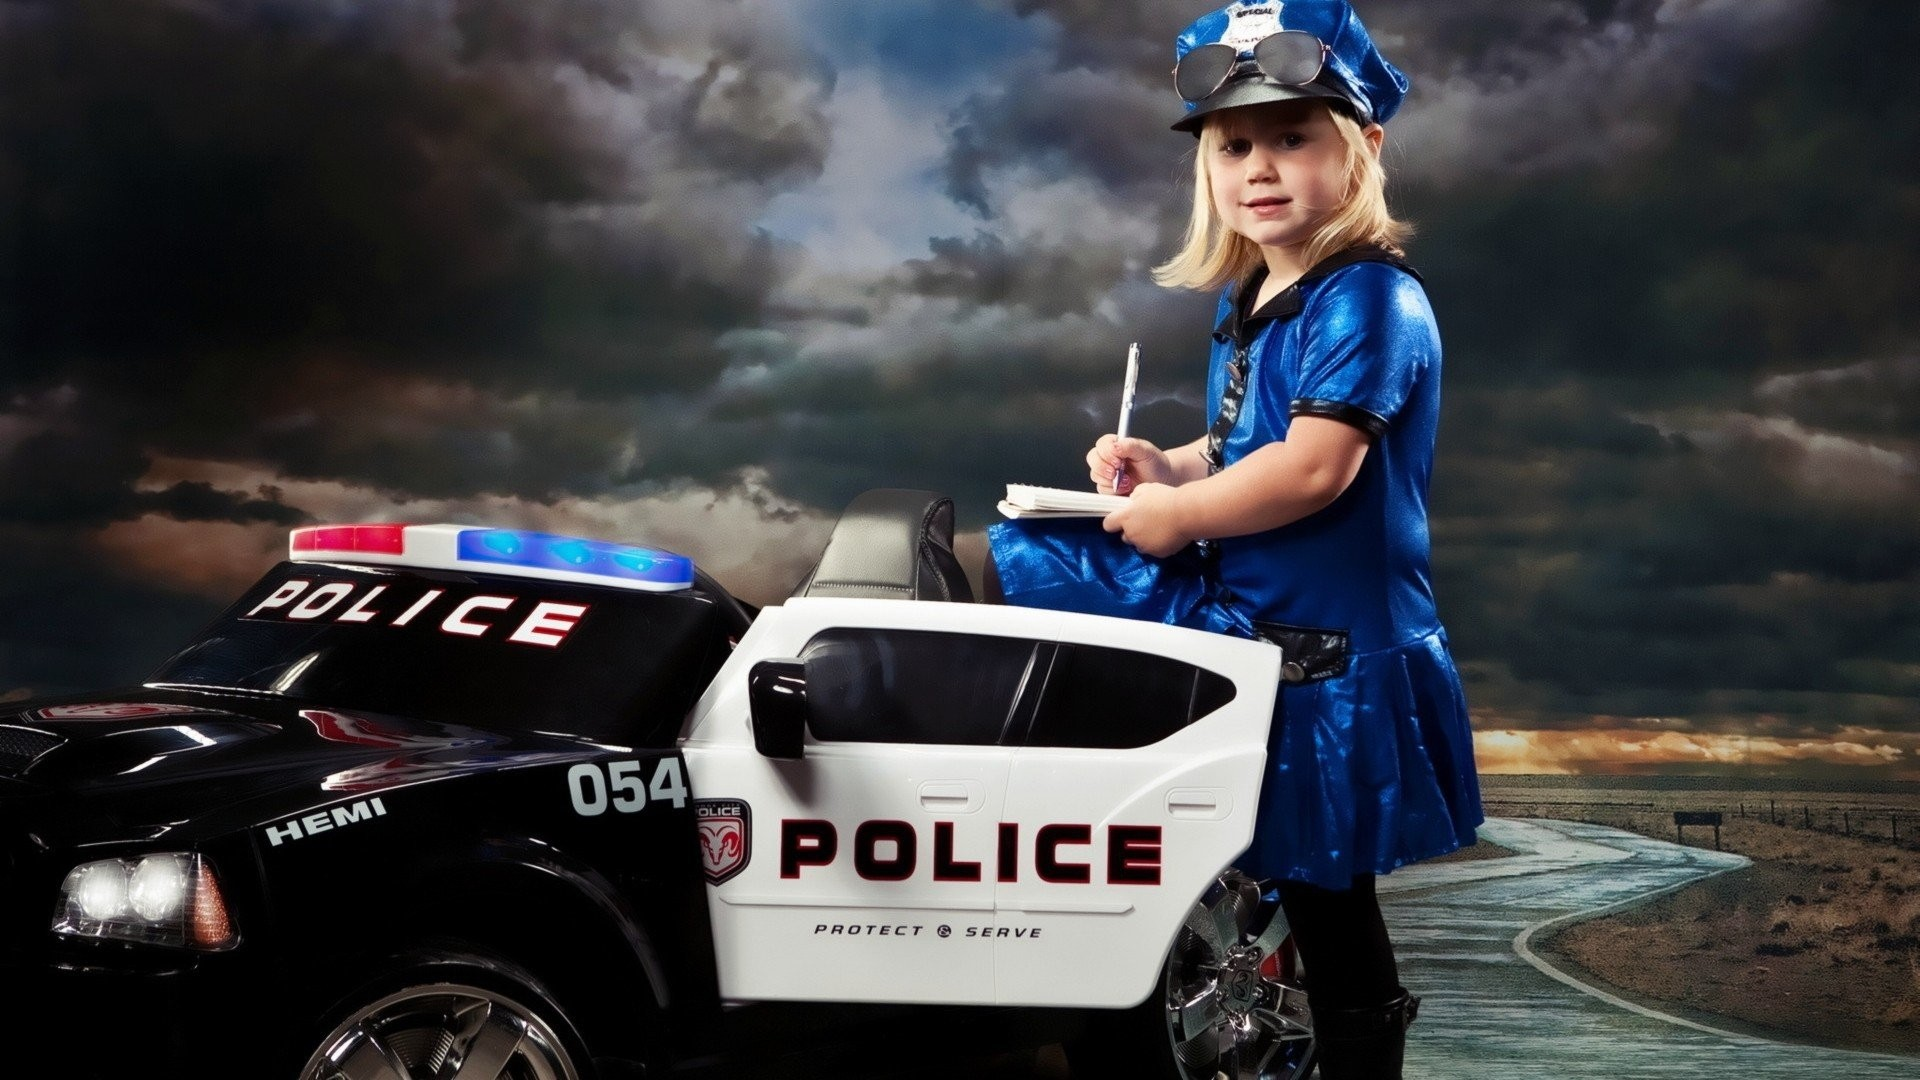 1920x1080 Women police funny police cars wallpaper |  | 252101 | WallpaperUP